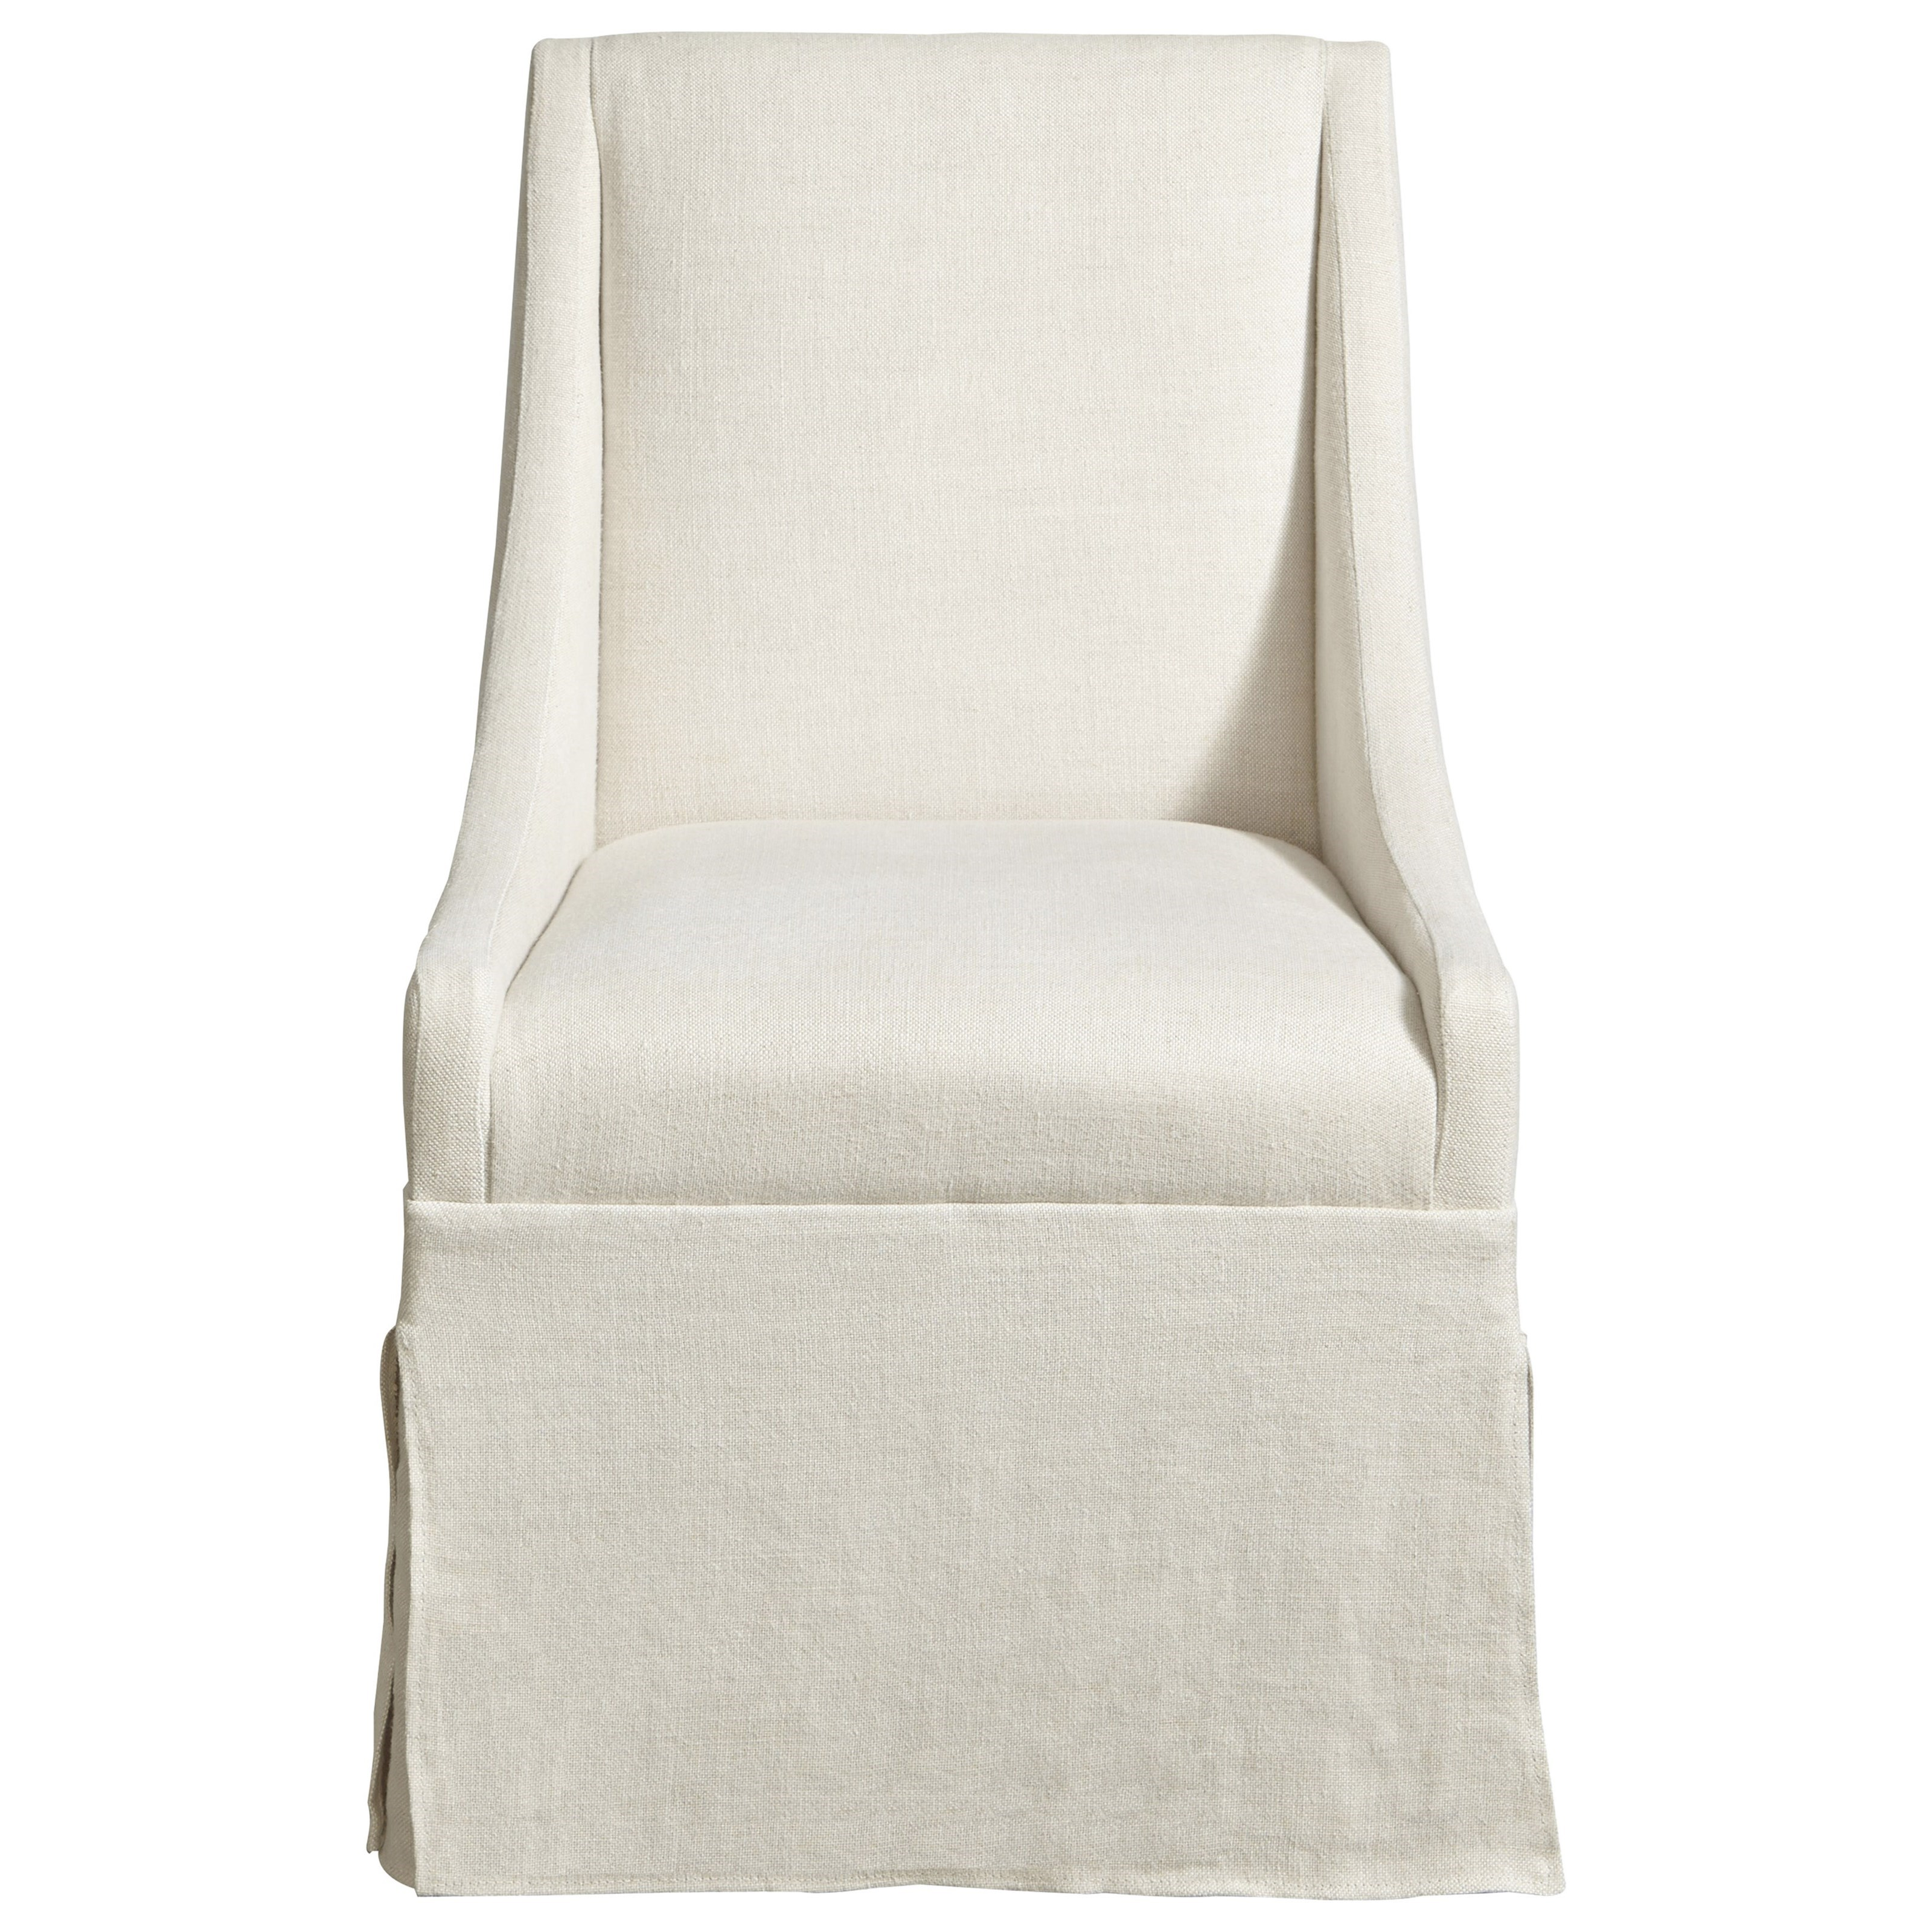 Townsend Castered Upholstered Dining Chair With Skirt